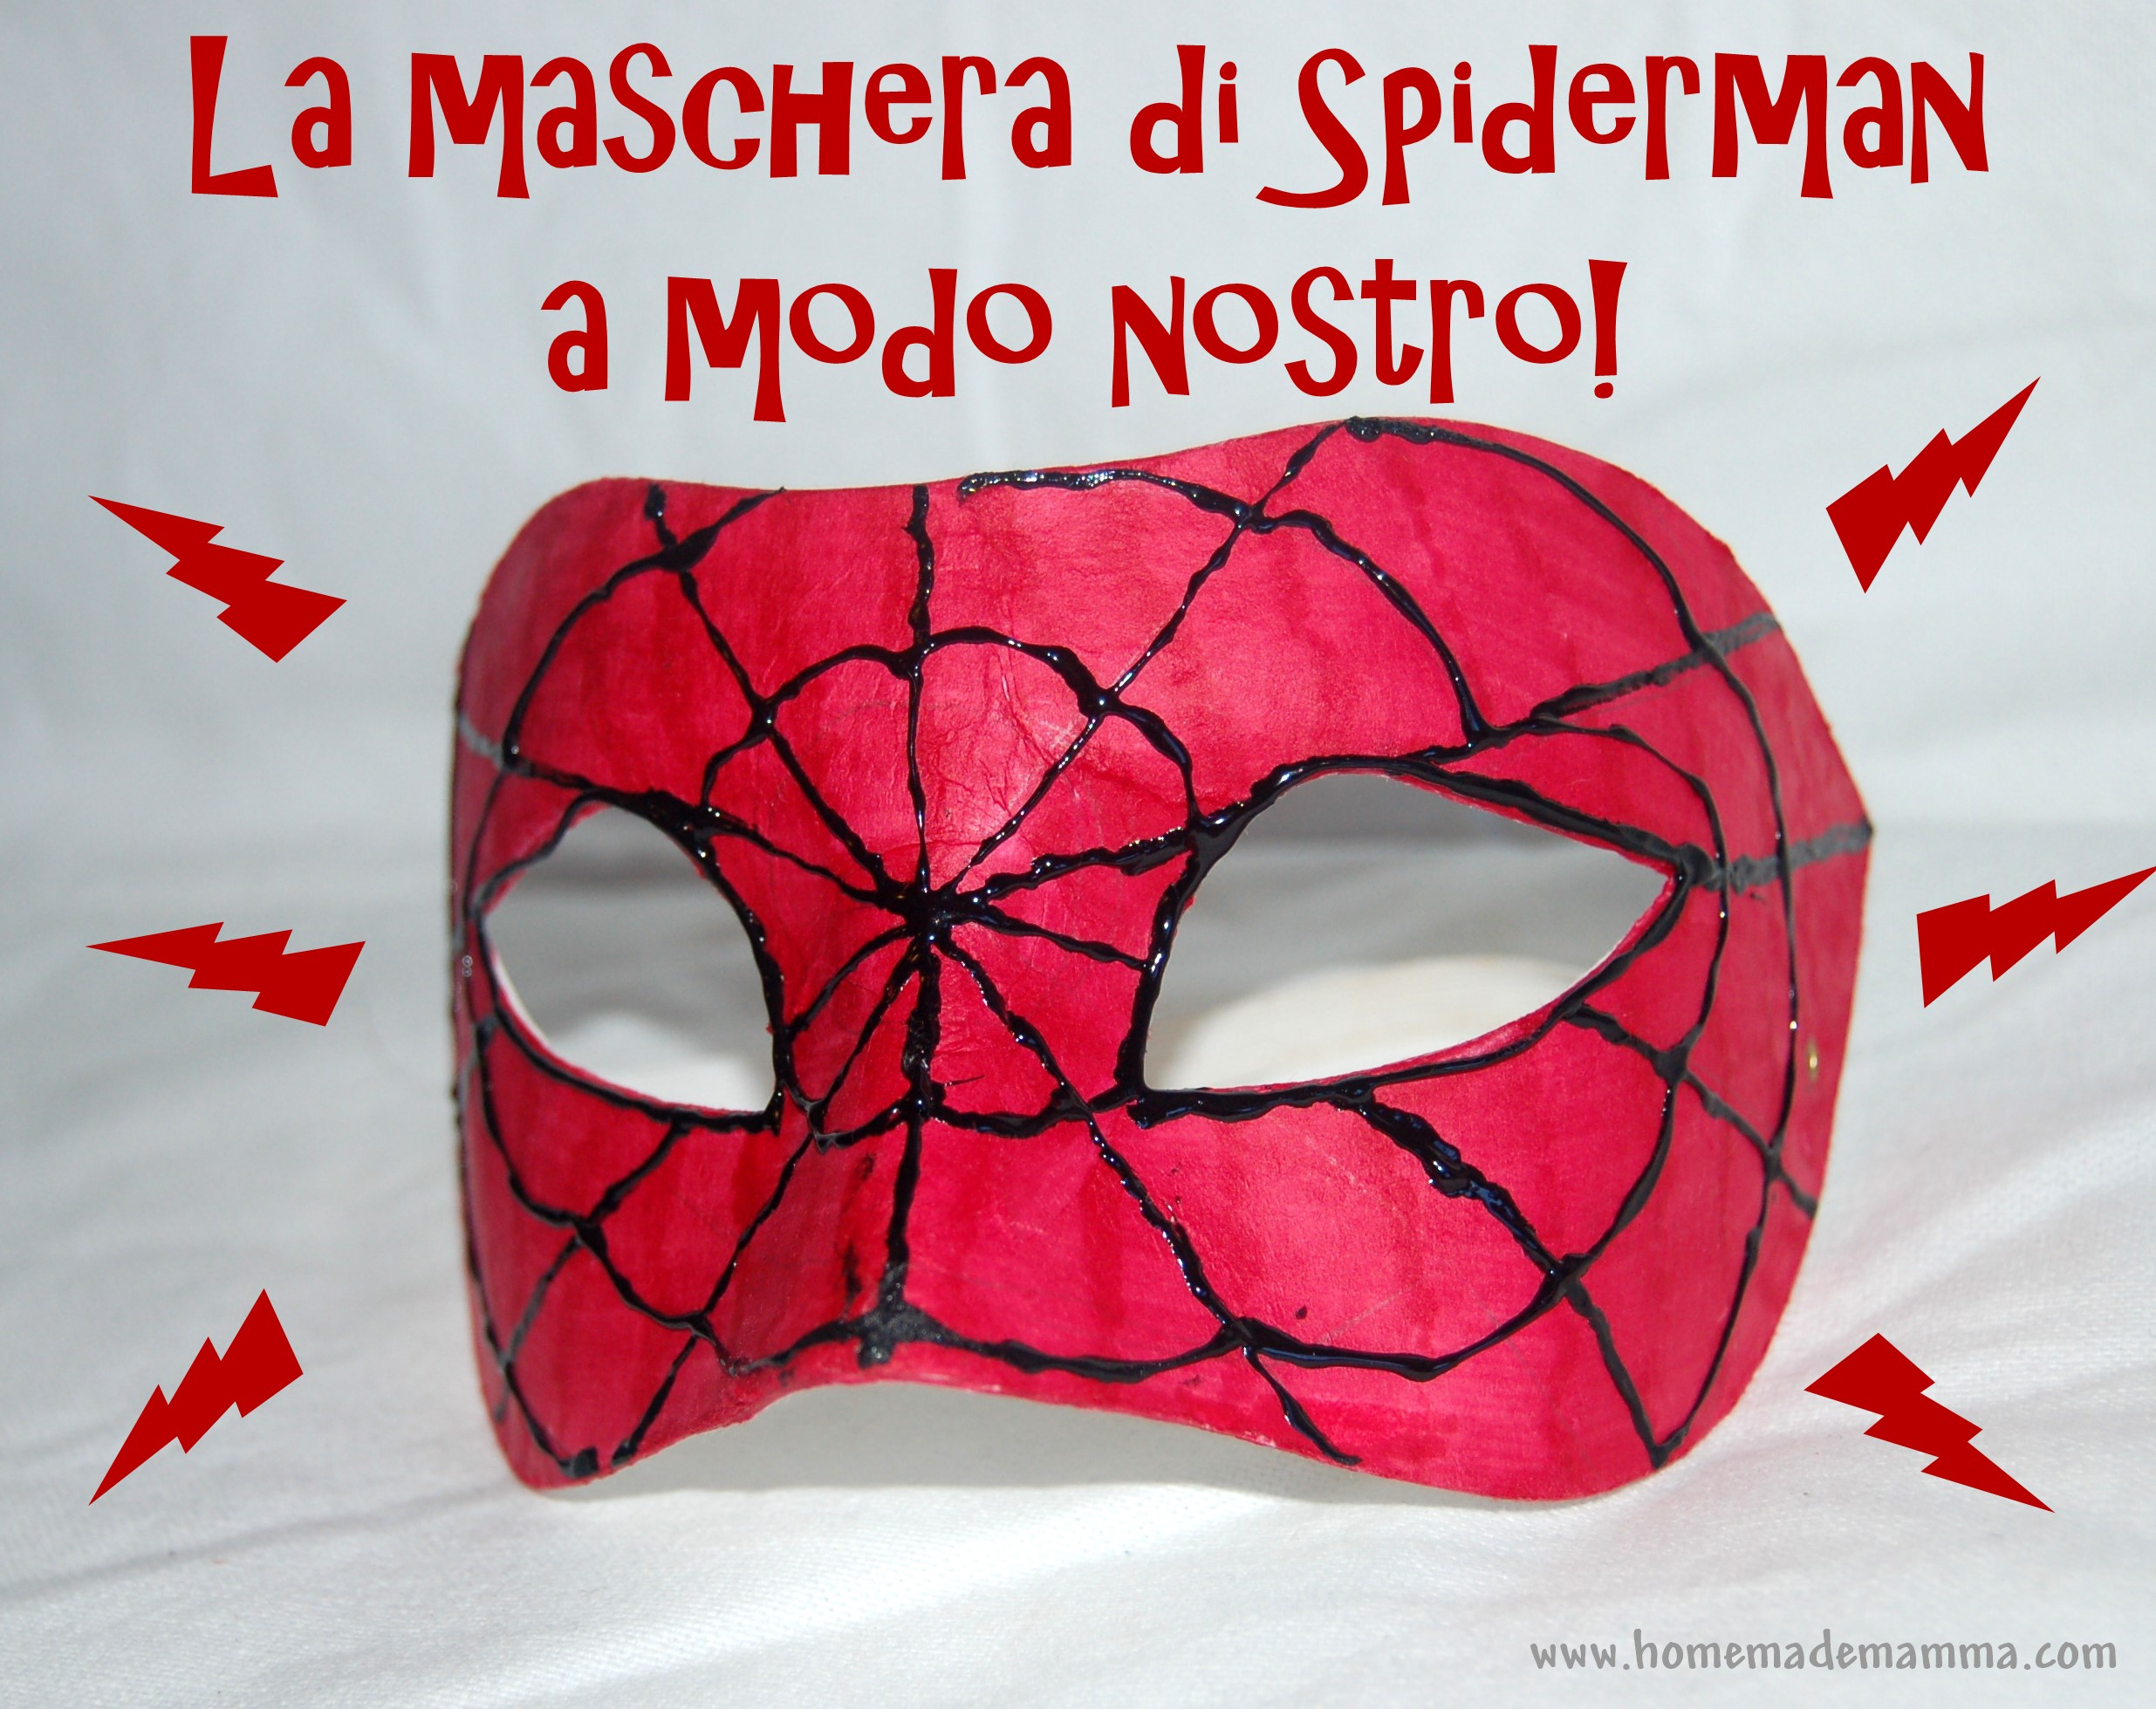 La maschera di spiderman a modo nostro for Maschere da colorare spiderman